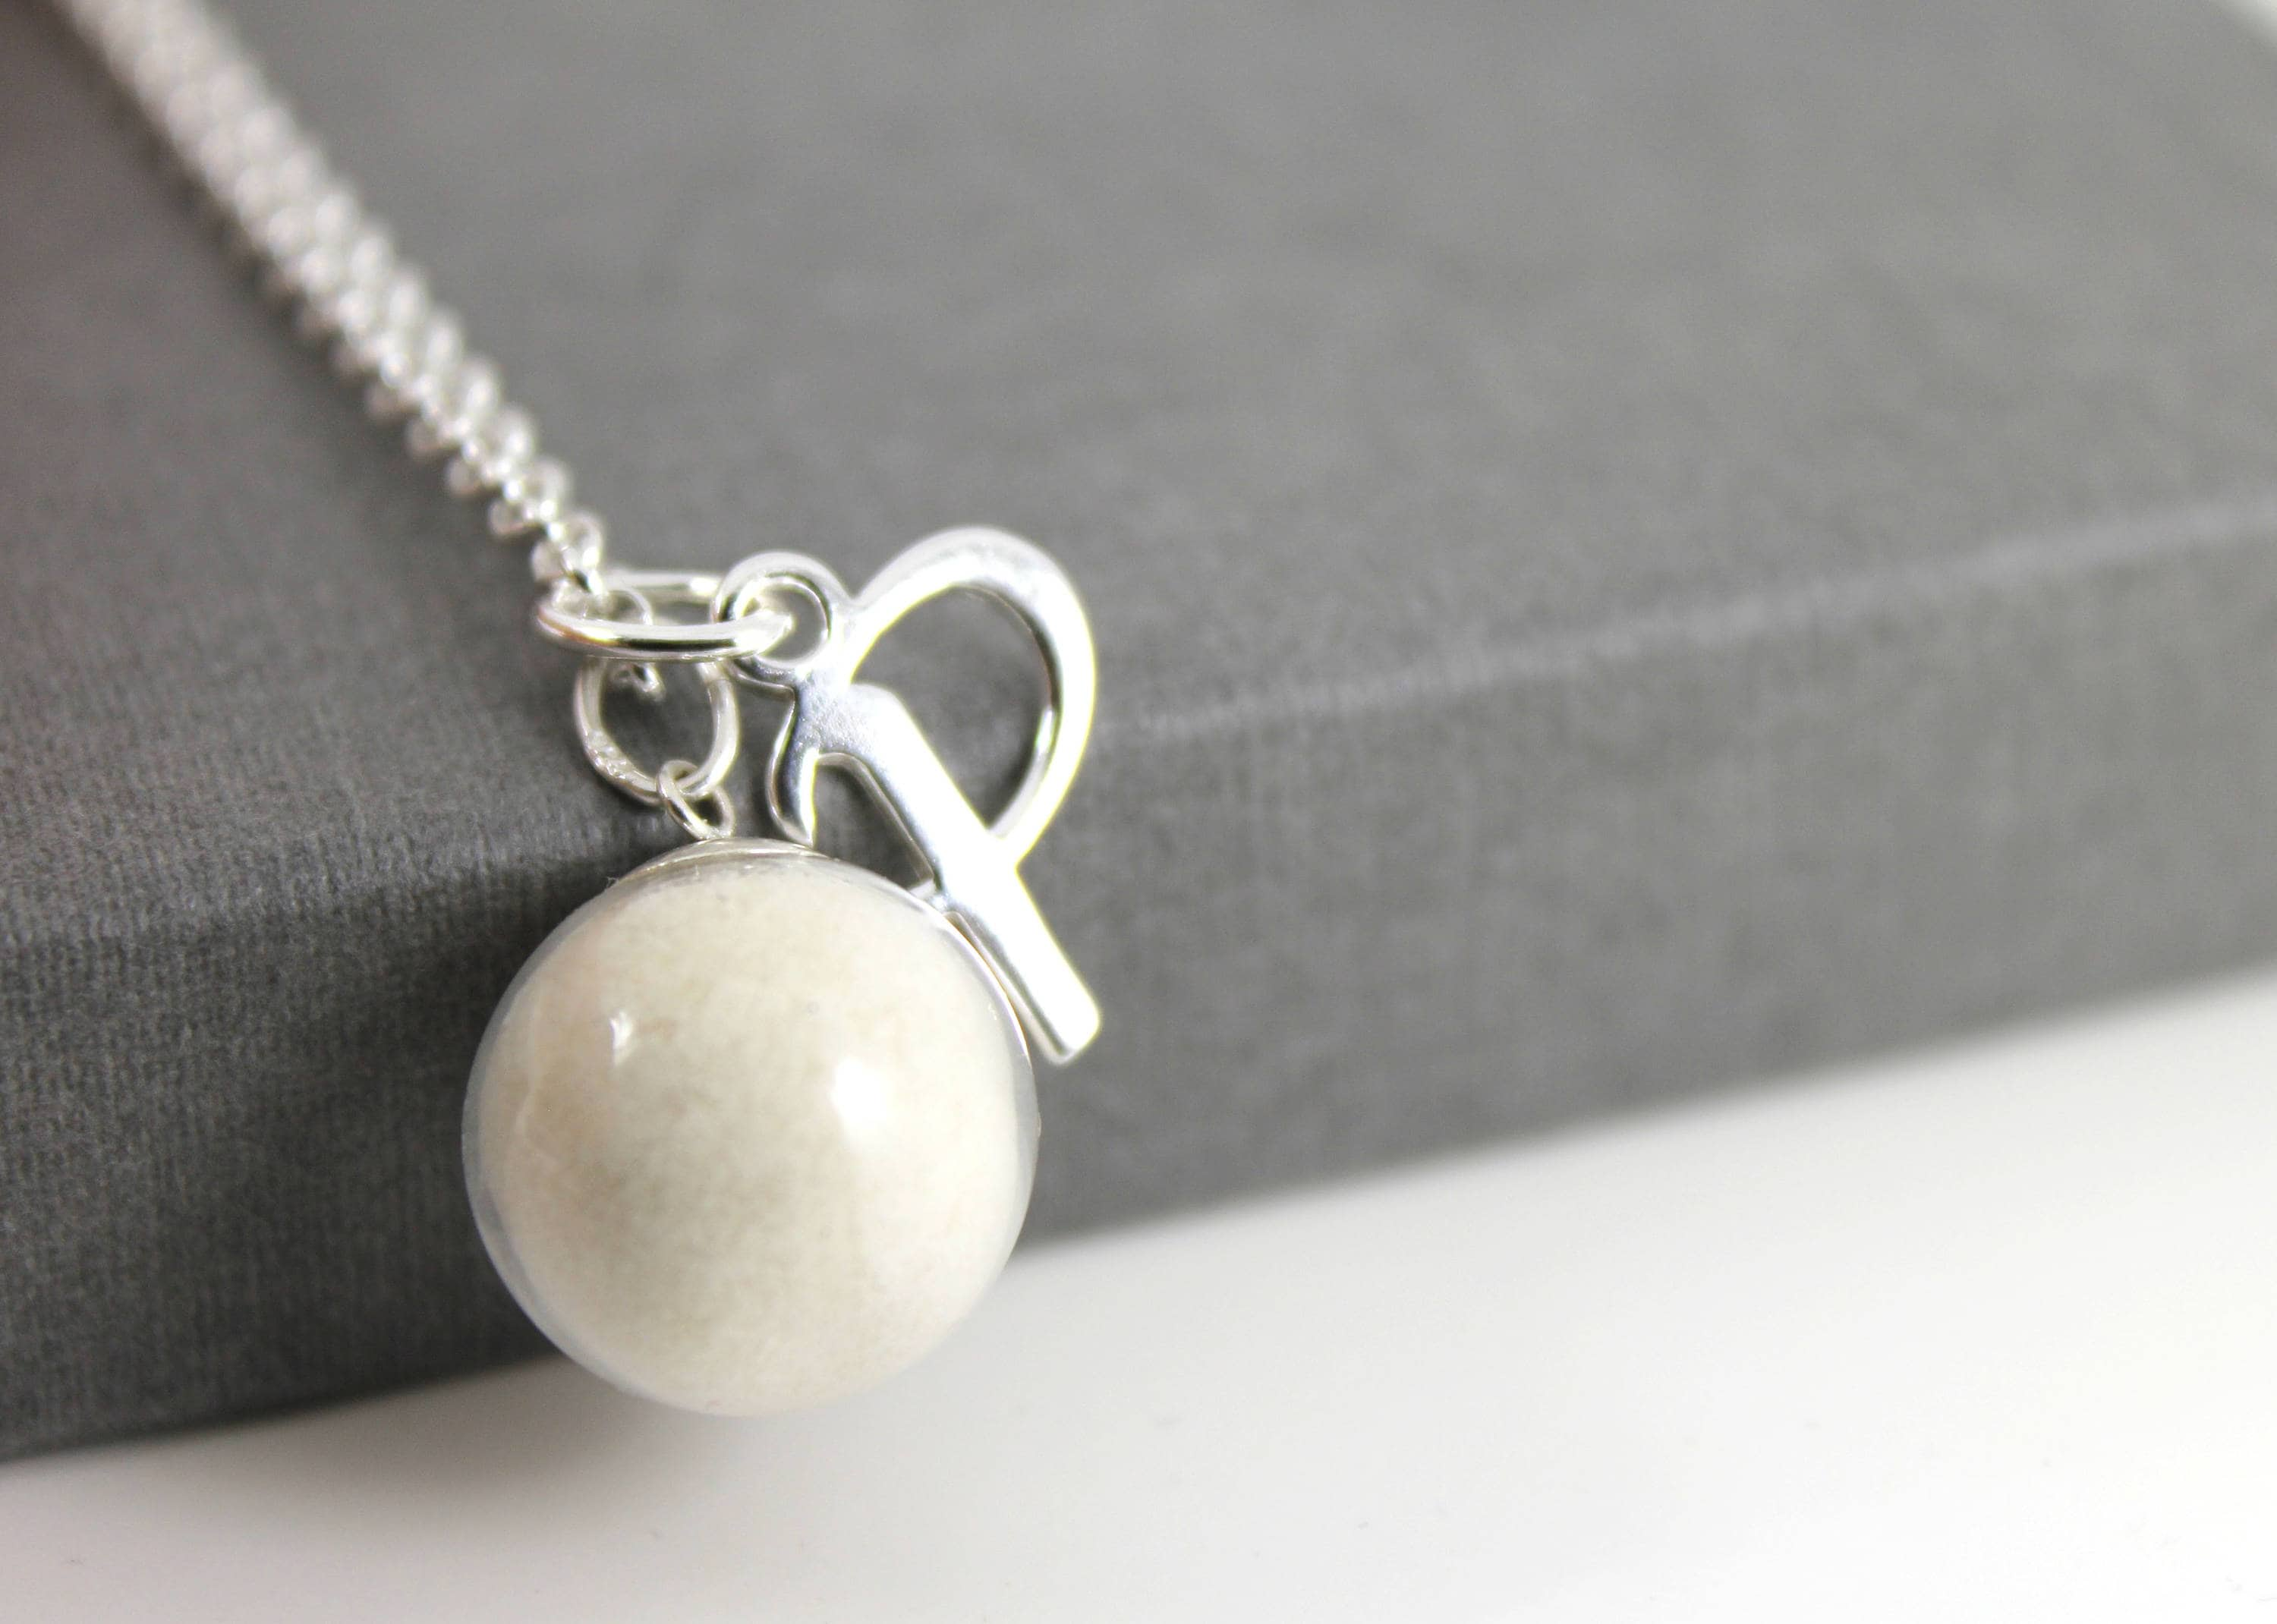 Diy breast milk pearl and initial sterling silver necklace kit do it diy breast milk pearl and initial sterling silver necklace kit do it yourself dna breastmilk solutioingenieria Image collections